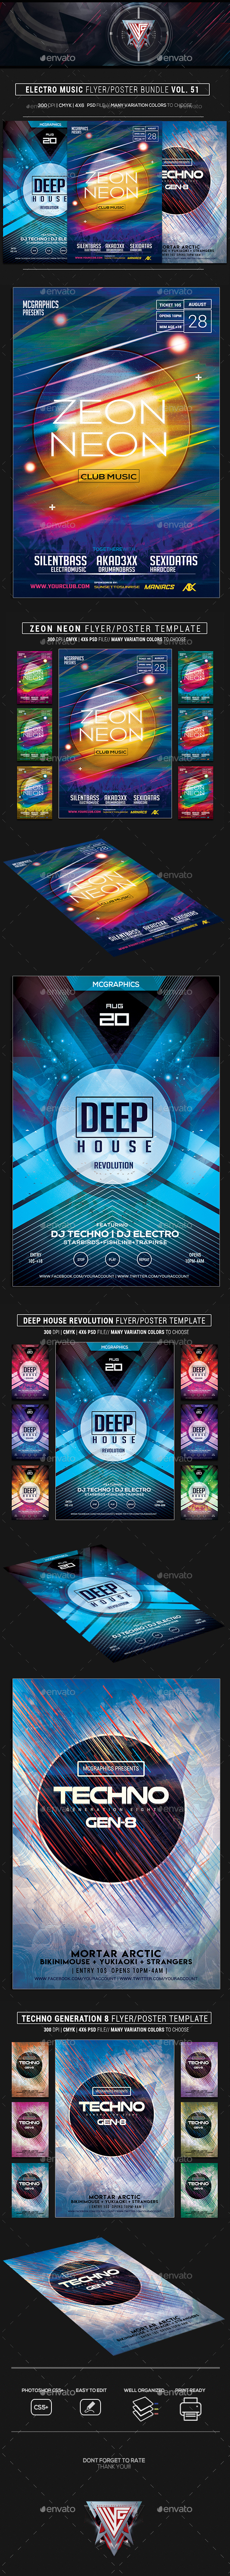 Electro Music Flyer Bundle Vol 51 - Flyers Print Templates